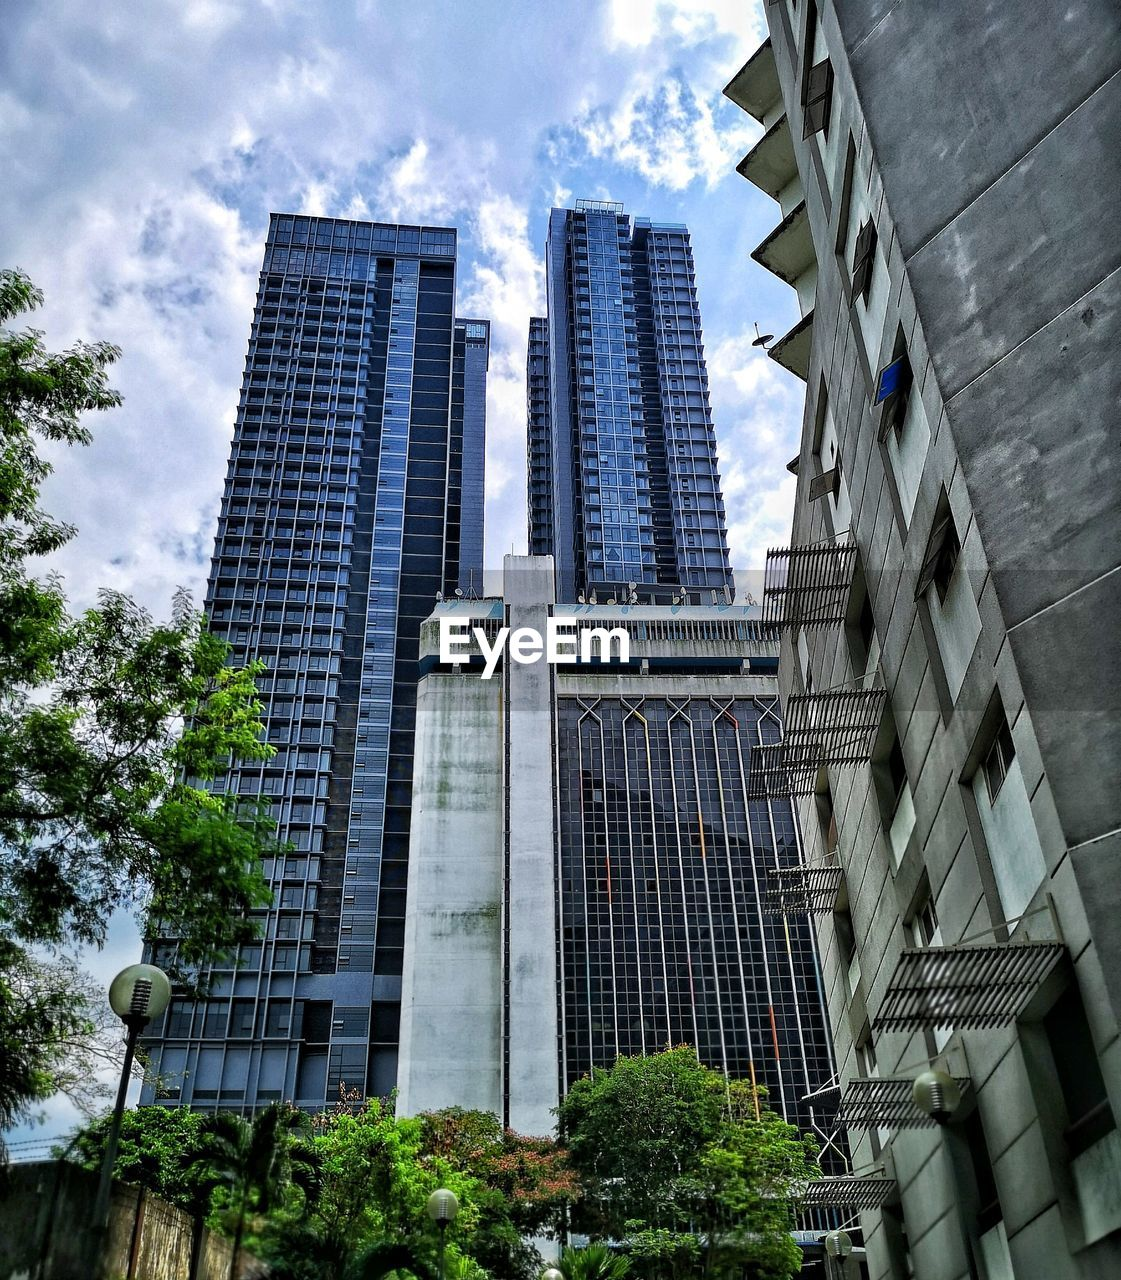 built structure, architecture, city, sky, building exterior, low angle view, building, cloud - sky, modern, office building exterior, tall - high, no people, office, nature, day, plant, tree, tower, skyscraper, outdoors, financial district, spire